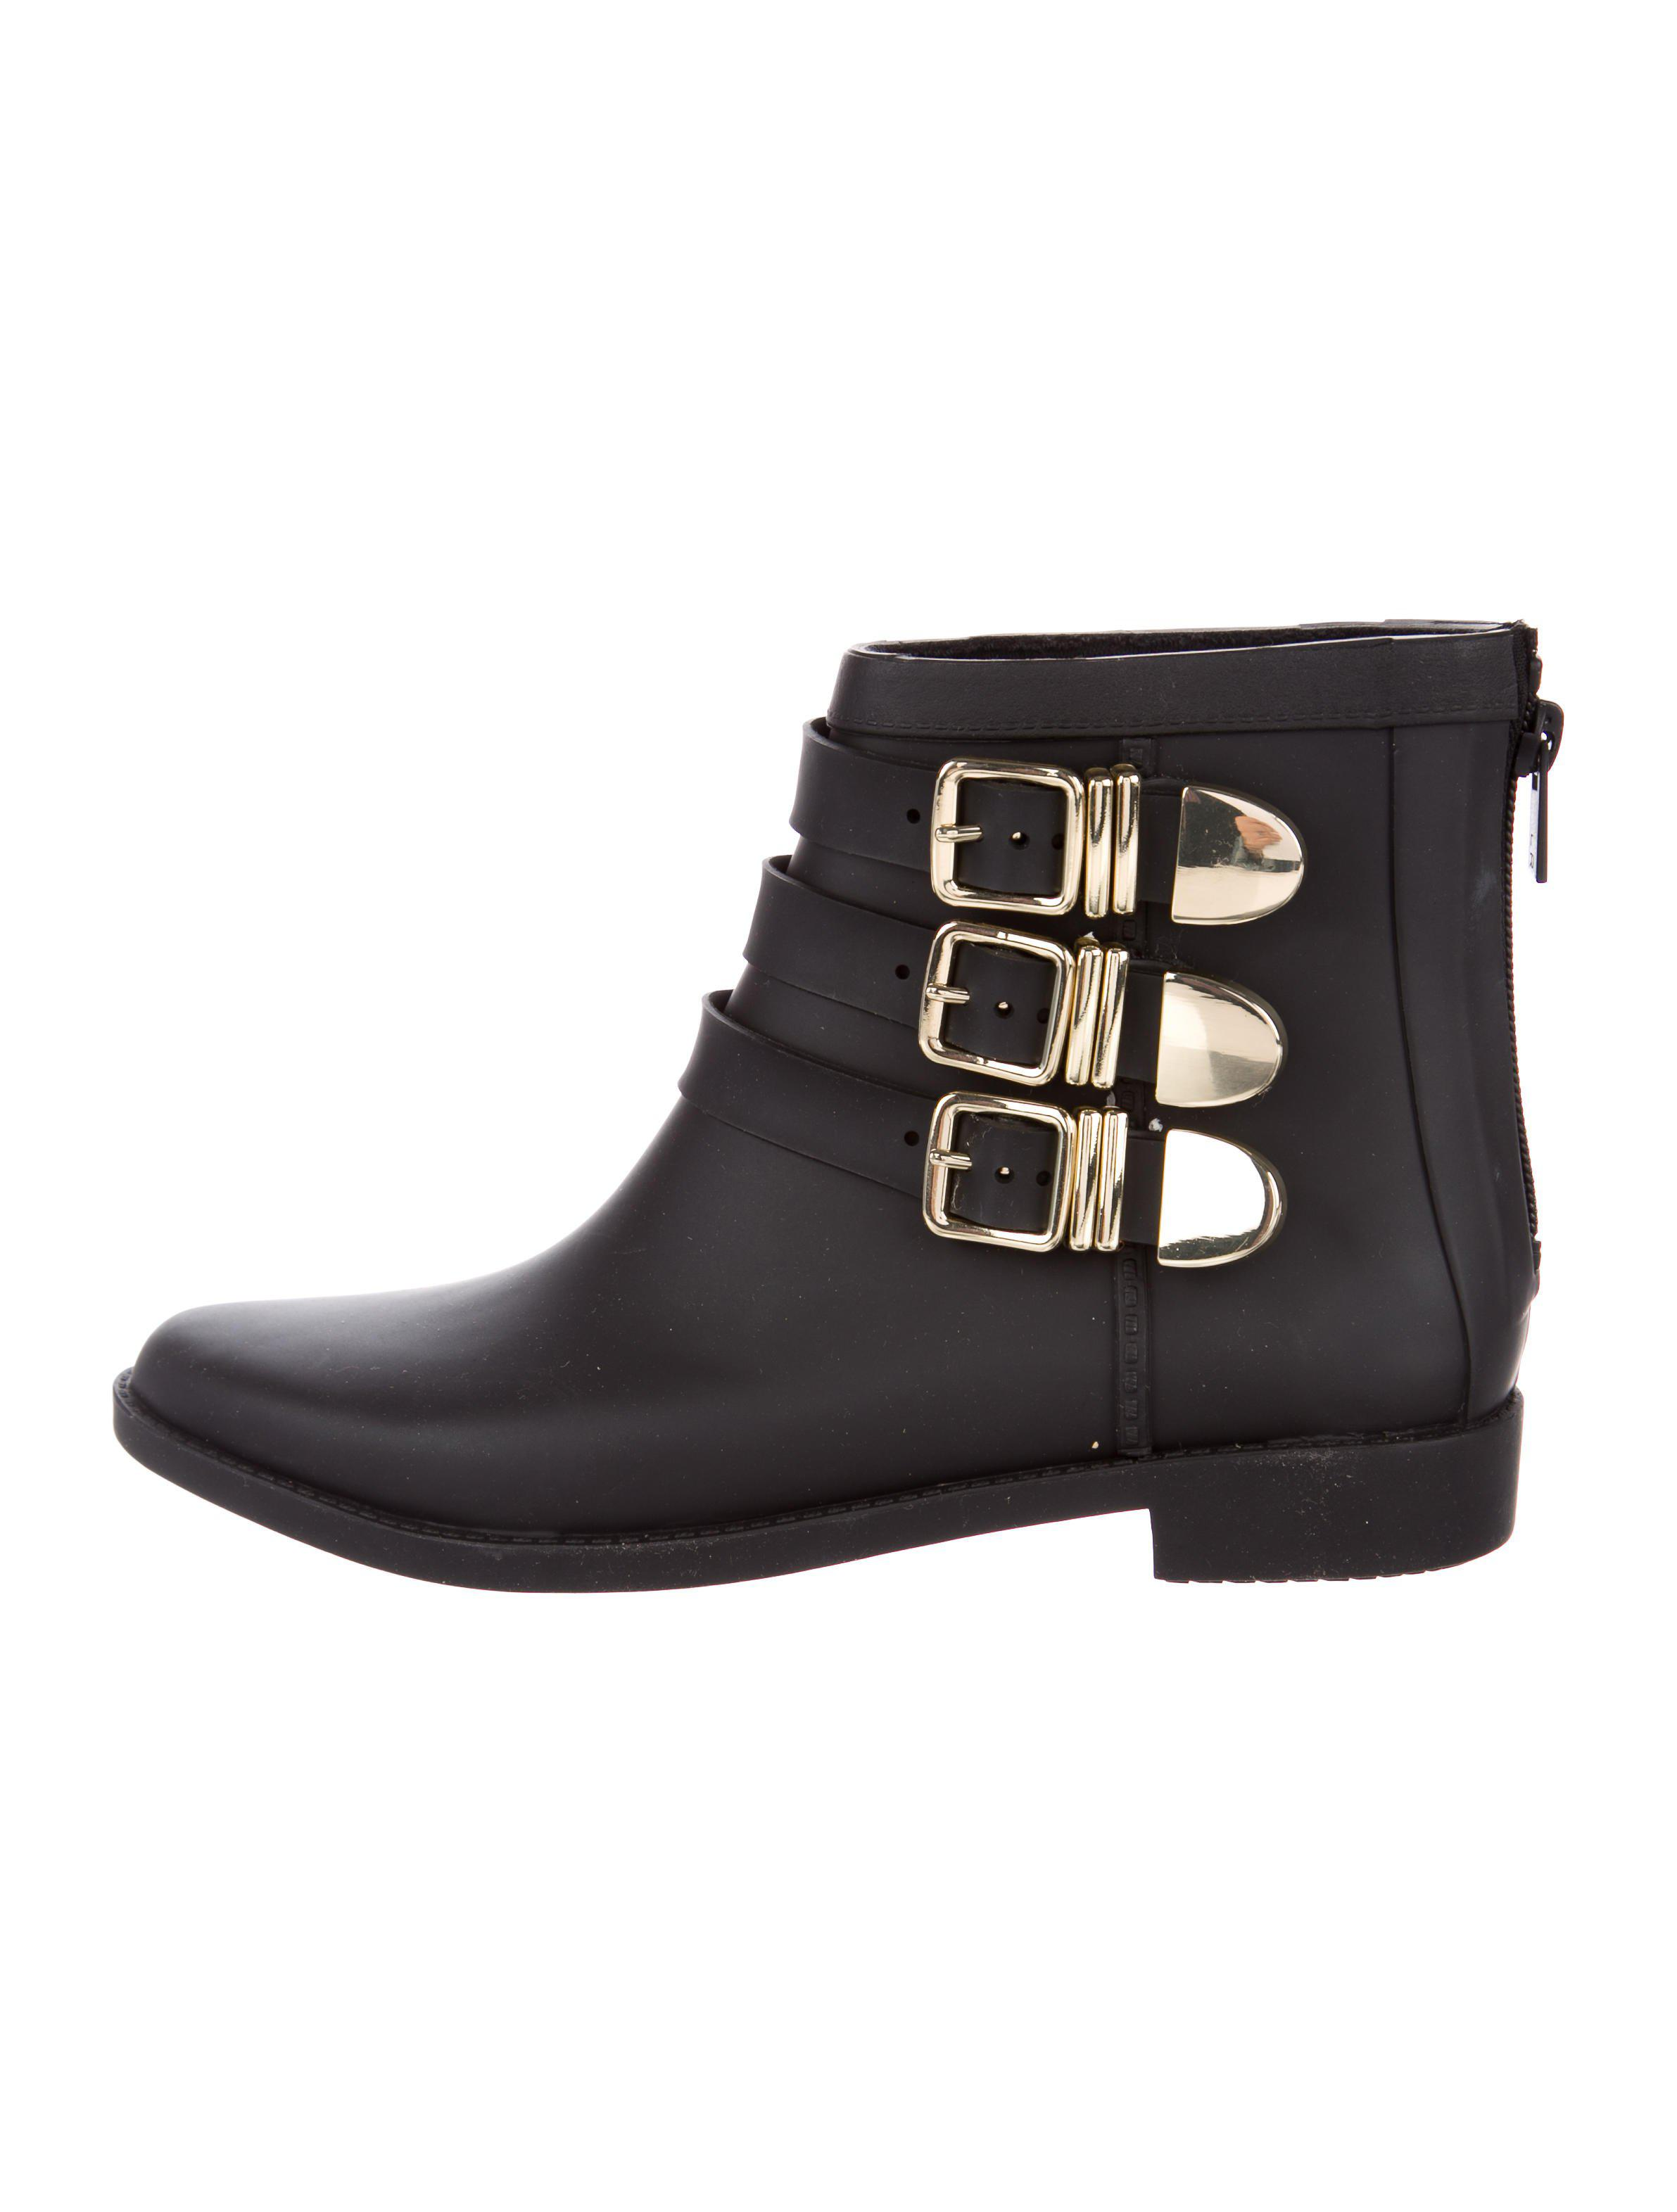 Loeffler Randall Rubber Round-Toe Ankle Boots sale visit new pre order for sale Ut33393XMD